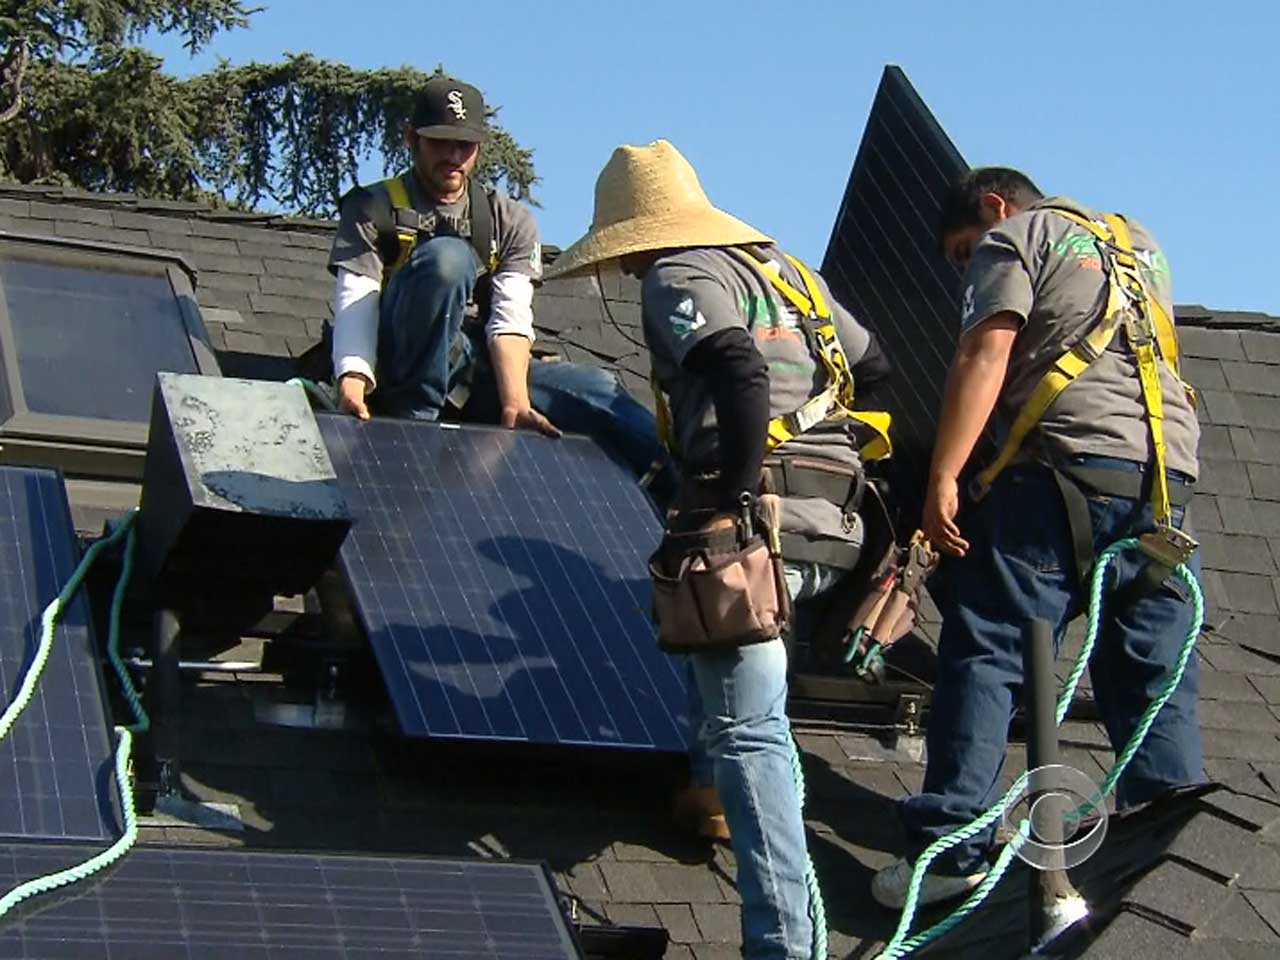 Chinese solar panels exemplify trade problems